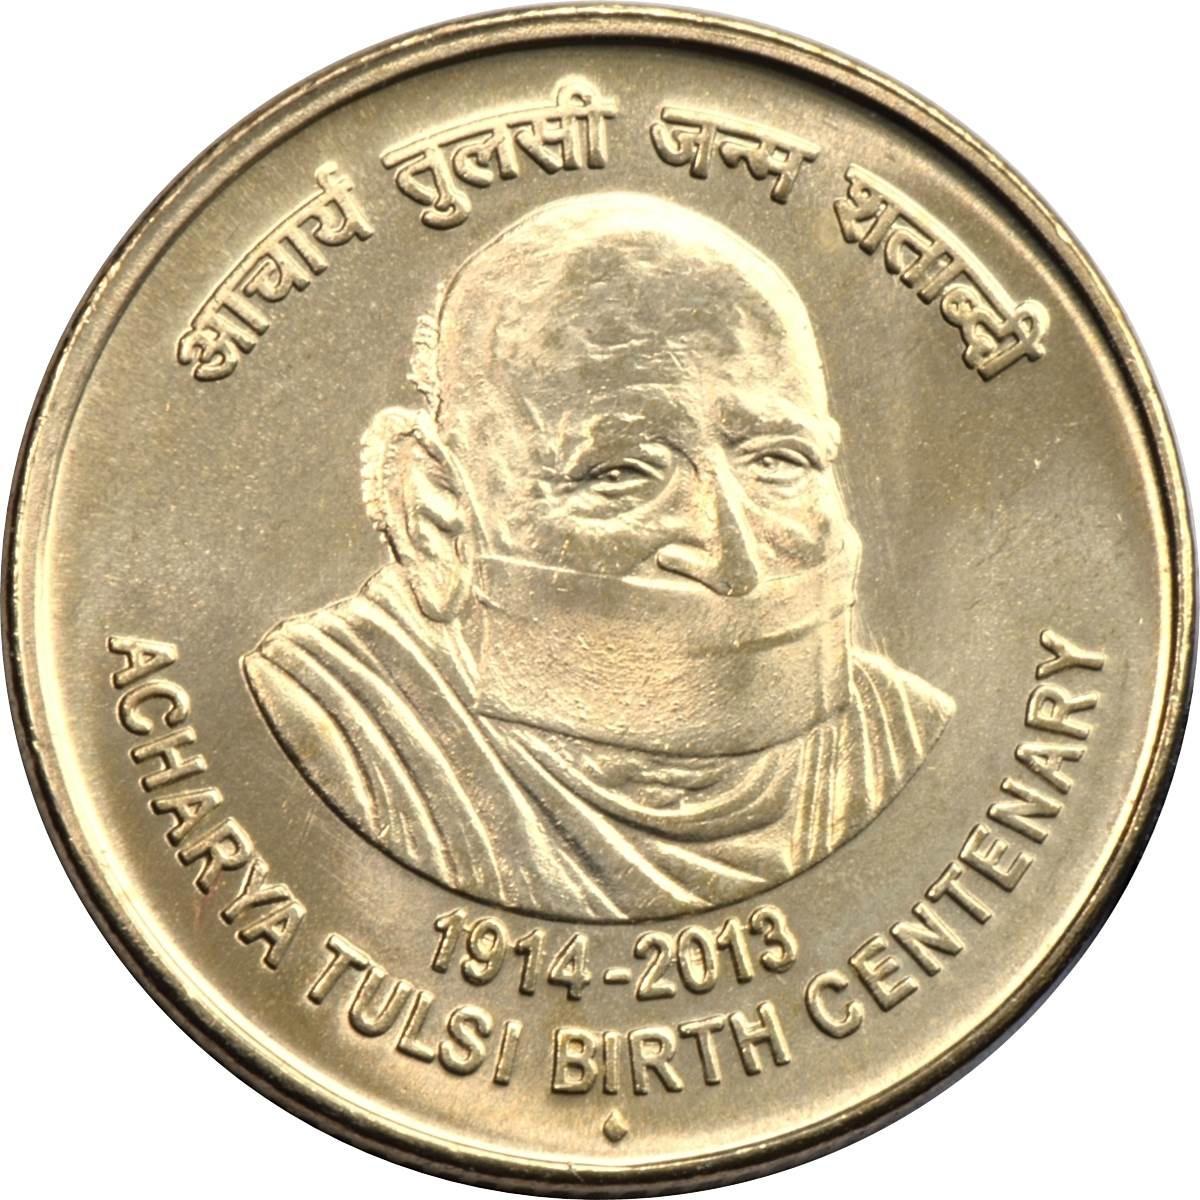 acharya tulsi 146) commemorating the birth centenary of acharya tulsi (20101914 – 23061997) of jainism by issuing rs20/- & rs5/- coins by the reserve bank of india.